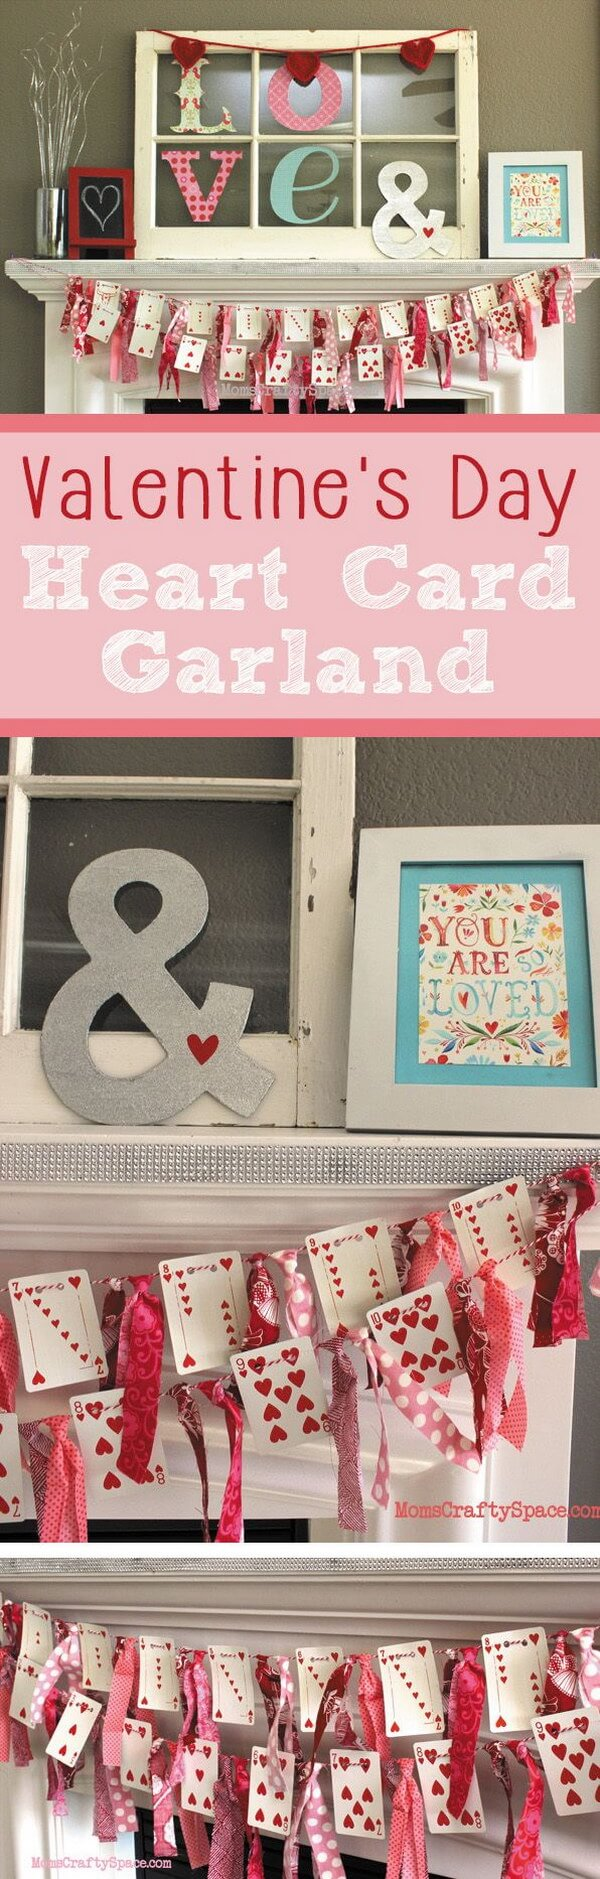 20 Super Easy Last Minute DIY Valentines Day Home